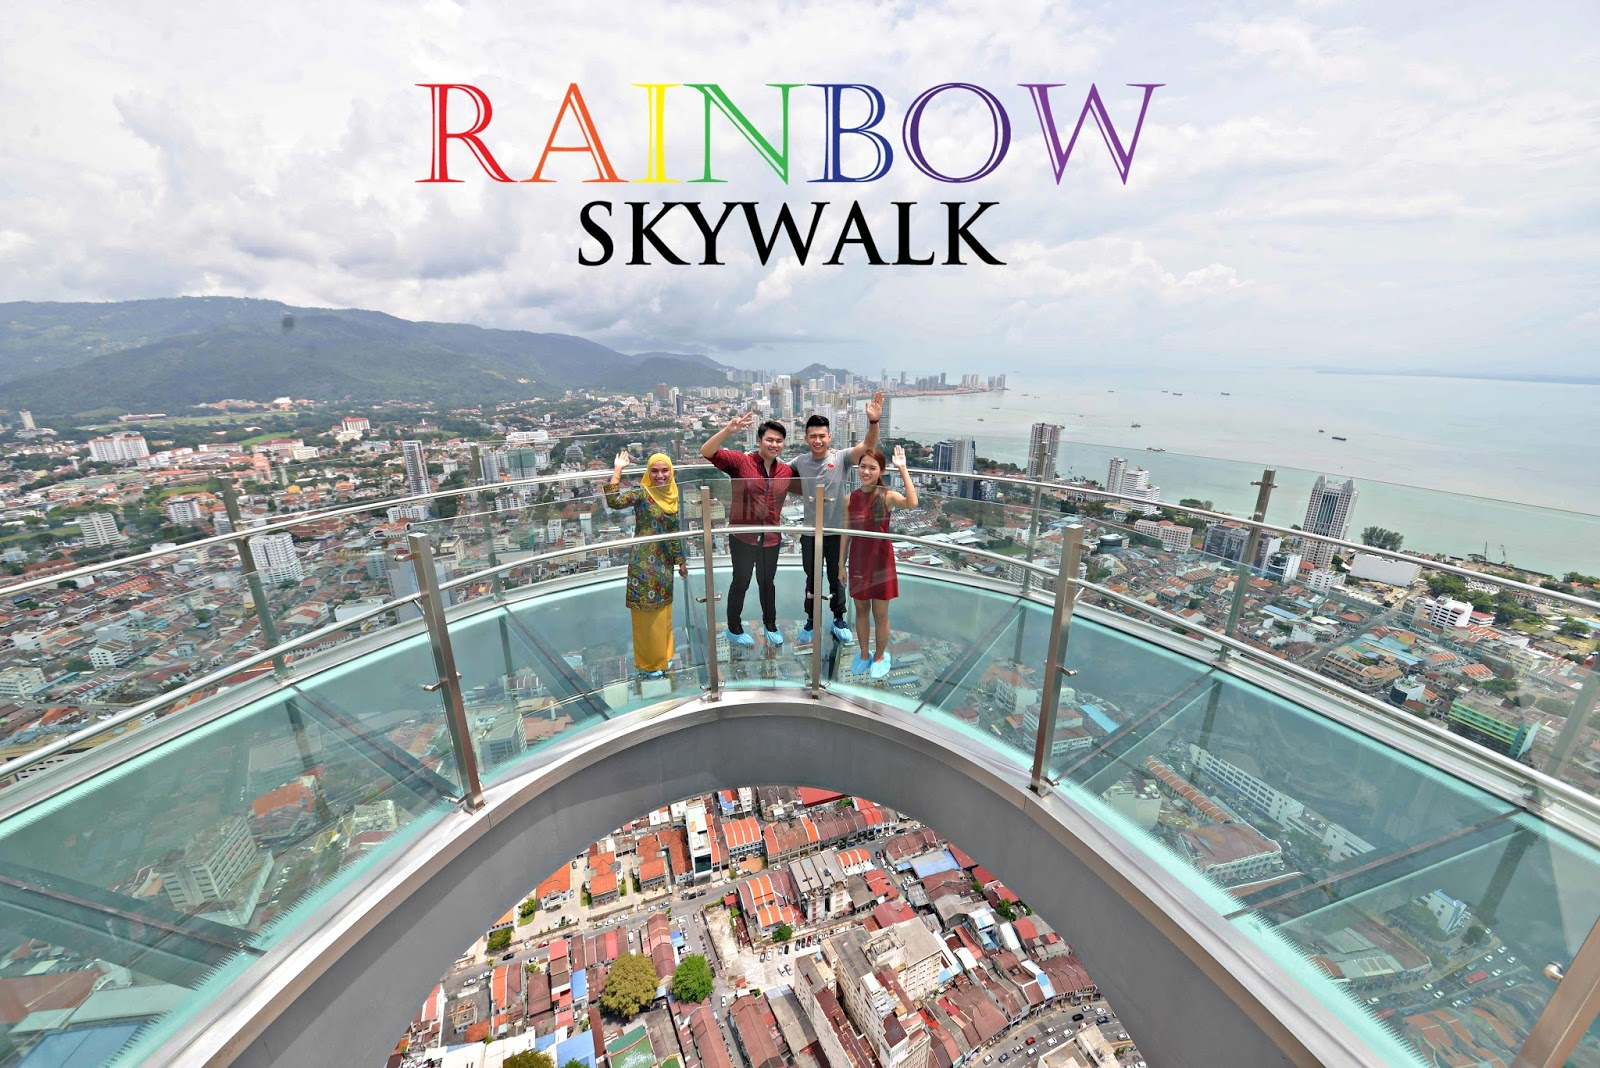 KOMTAR set to host the highest skywalk in Malaysia